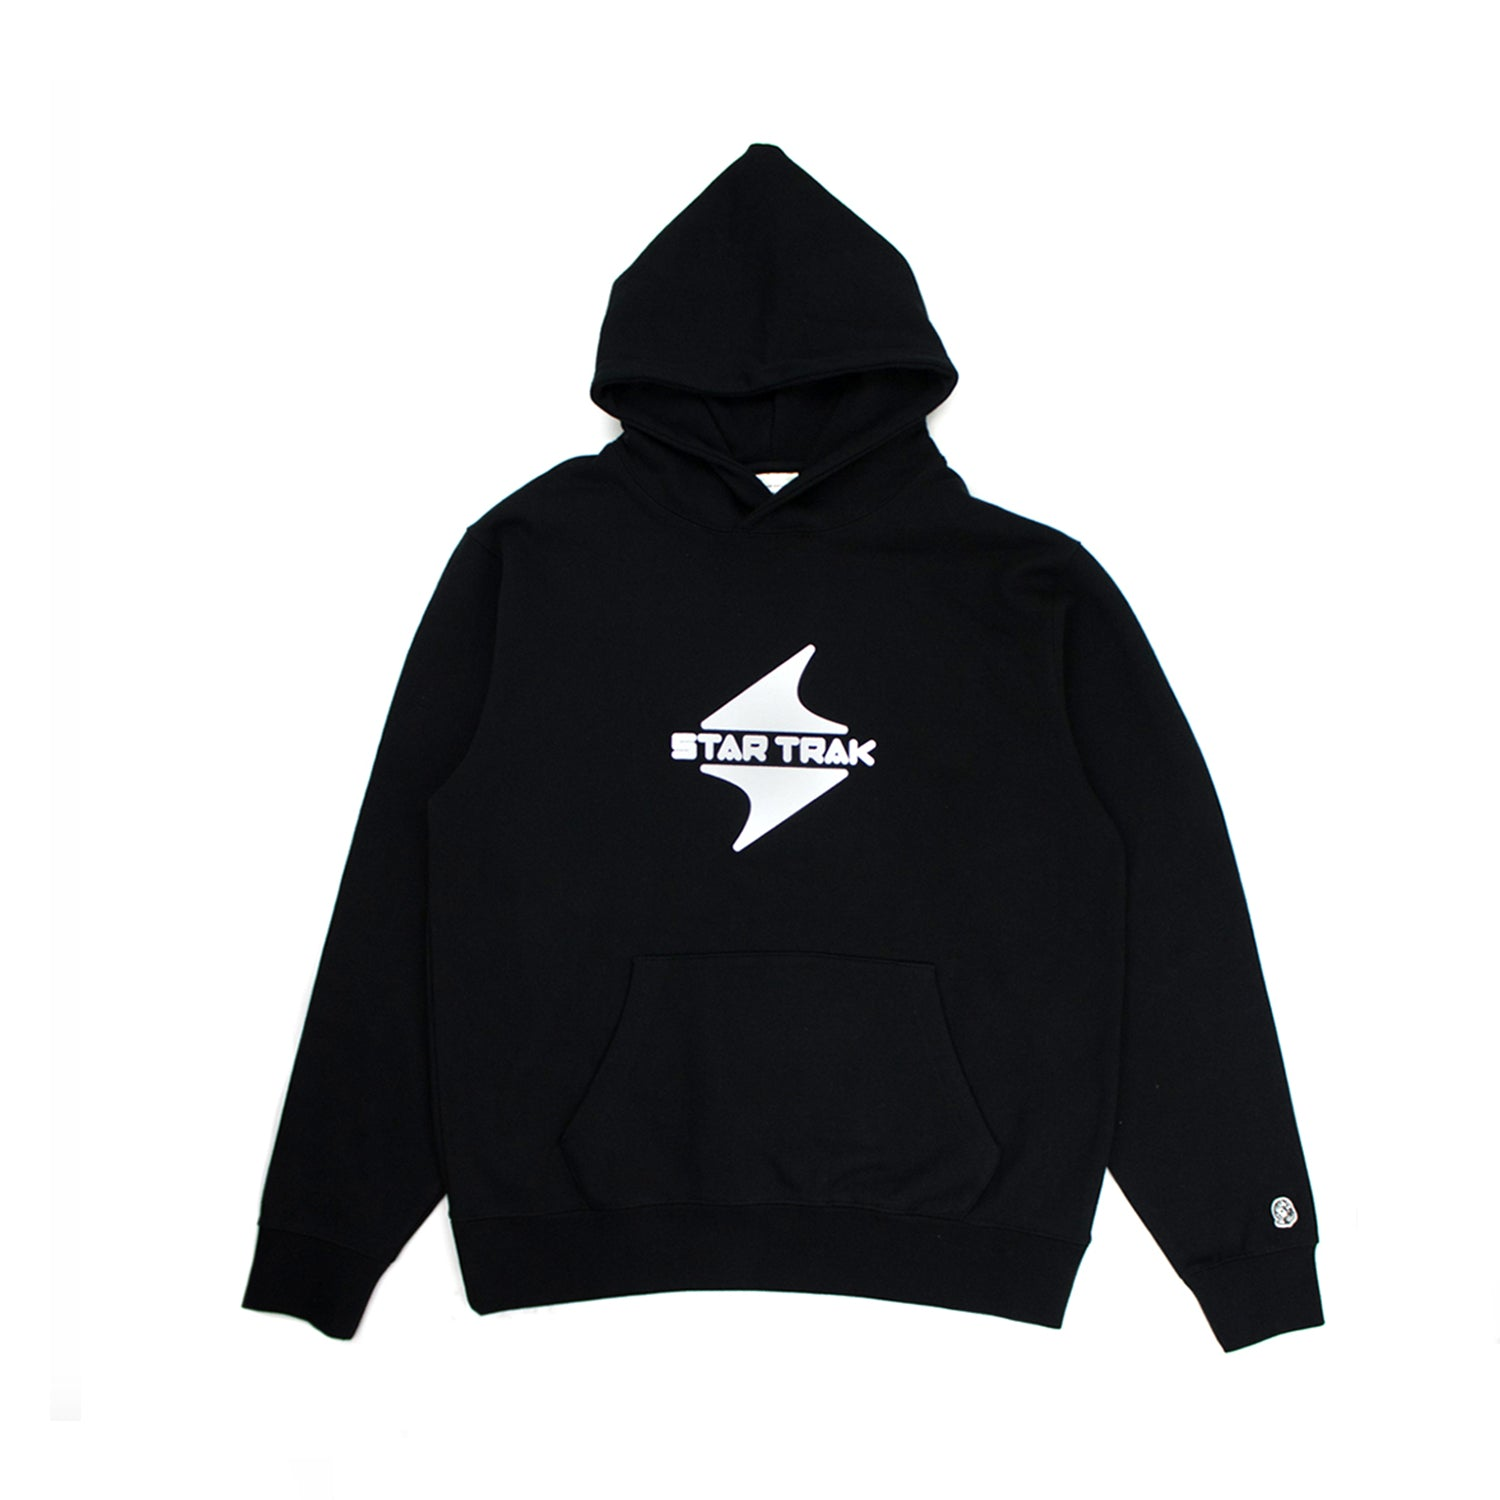 BILLIONAIRE BOYS CLUB X STAR TRAK MANKEY HOODIE